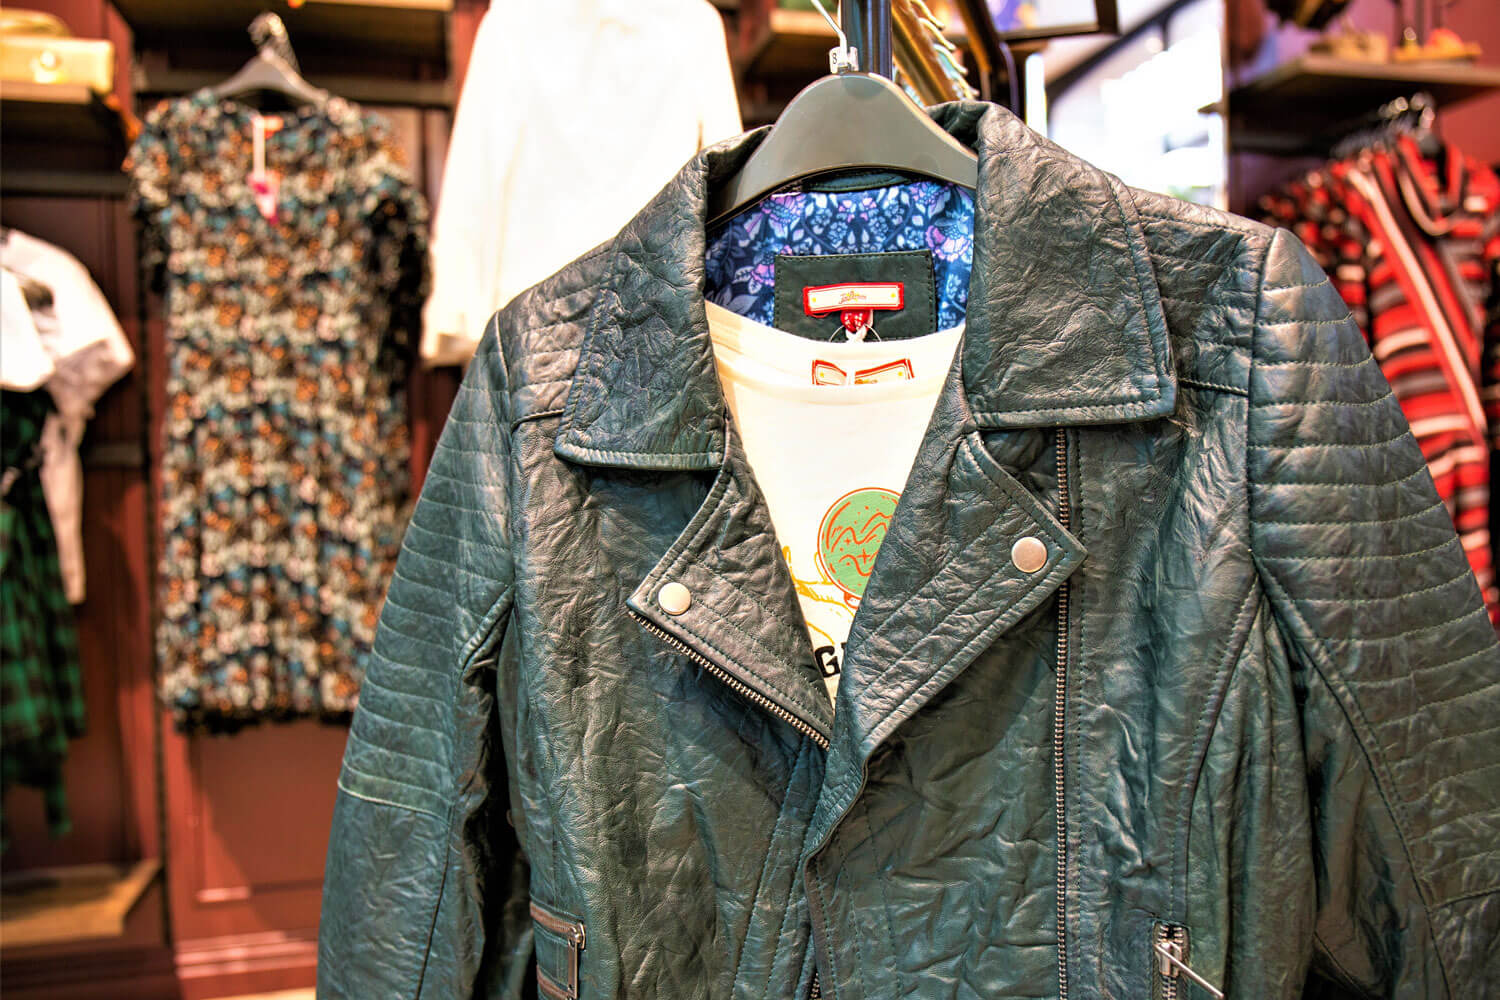 Meadowhall Store: It's all in the detail